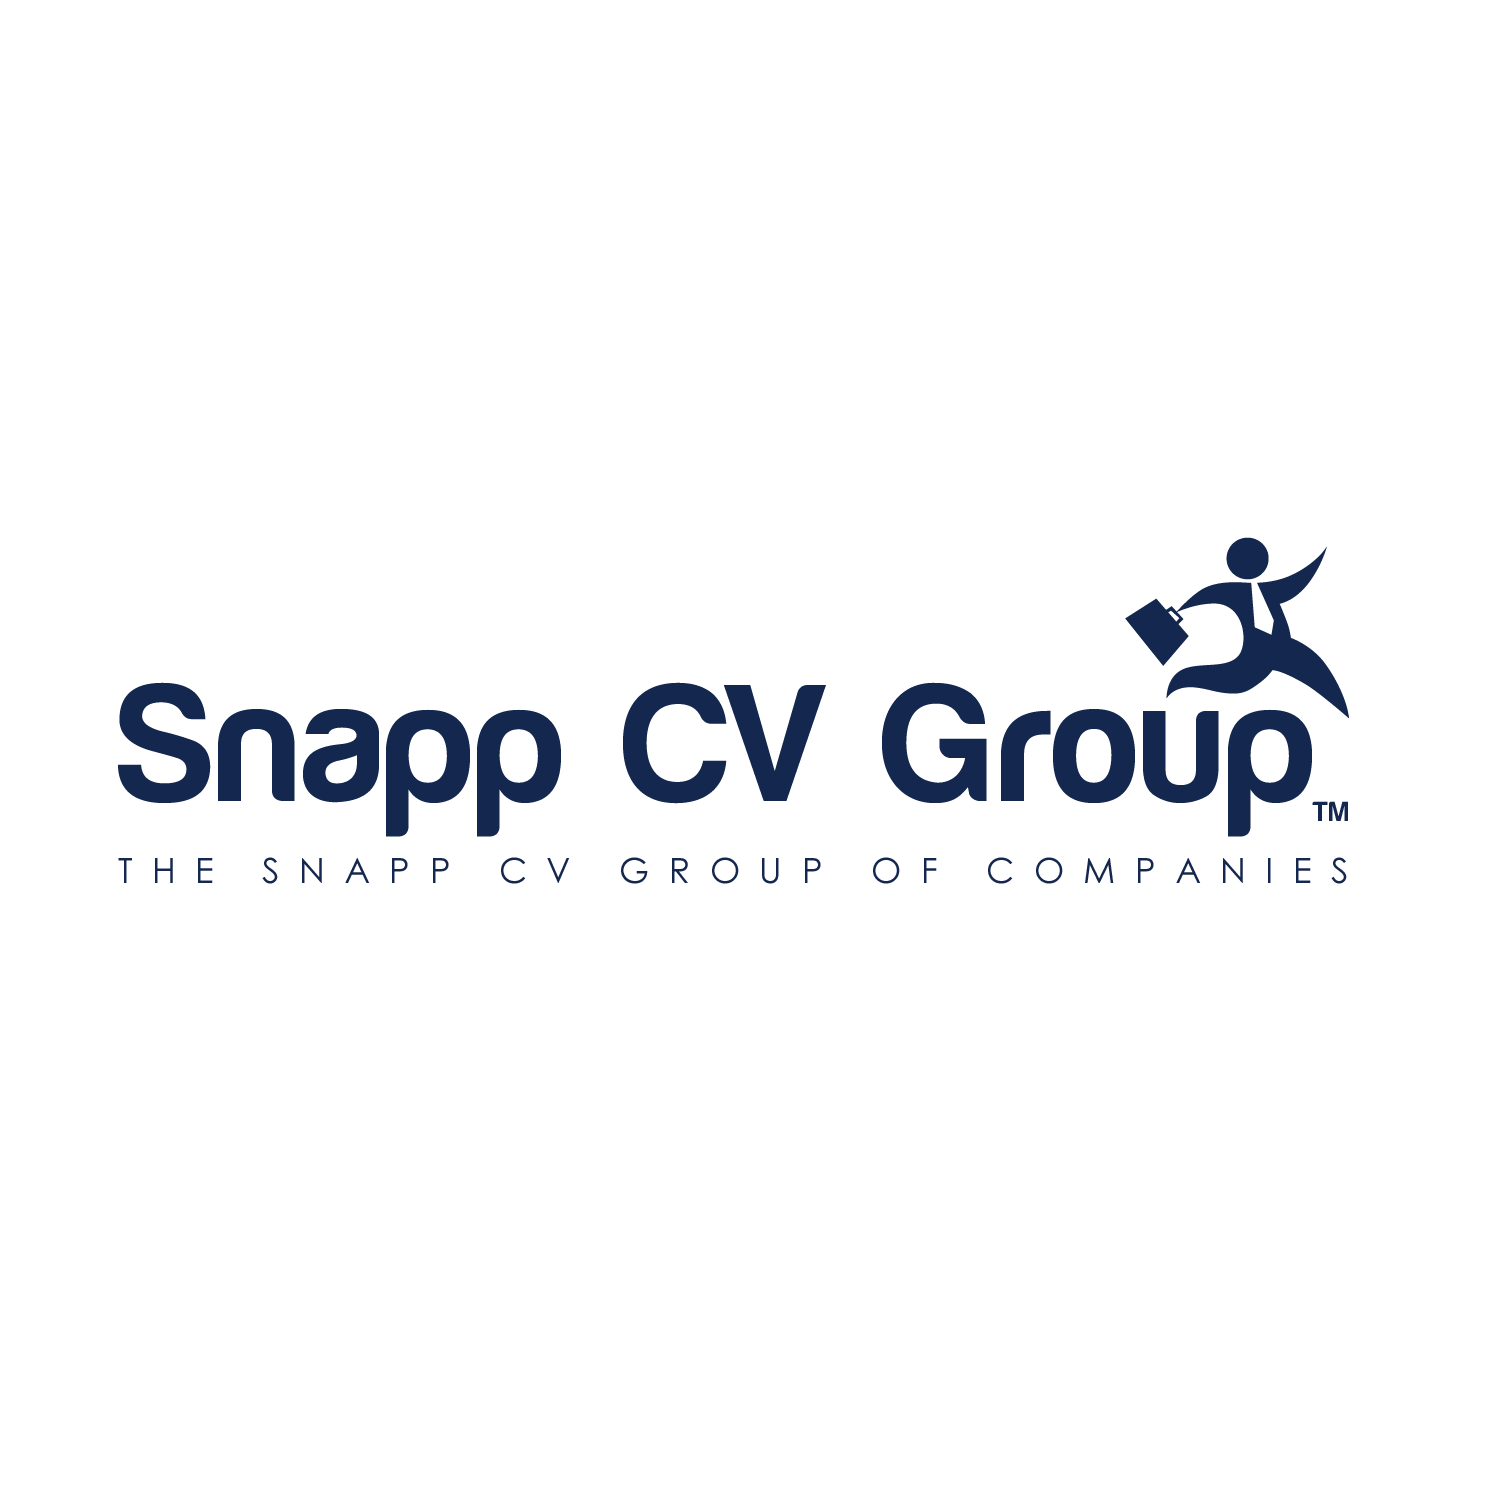 Snapp CV Group, launches 'Find me a job' Alexa Skill, powered by Resume-Library & CV-Library